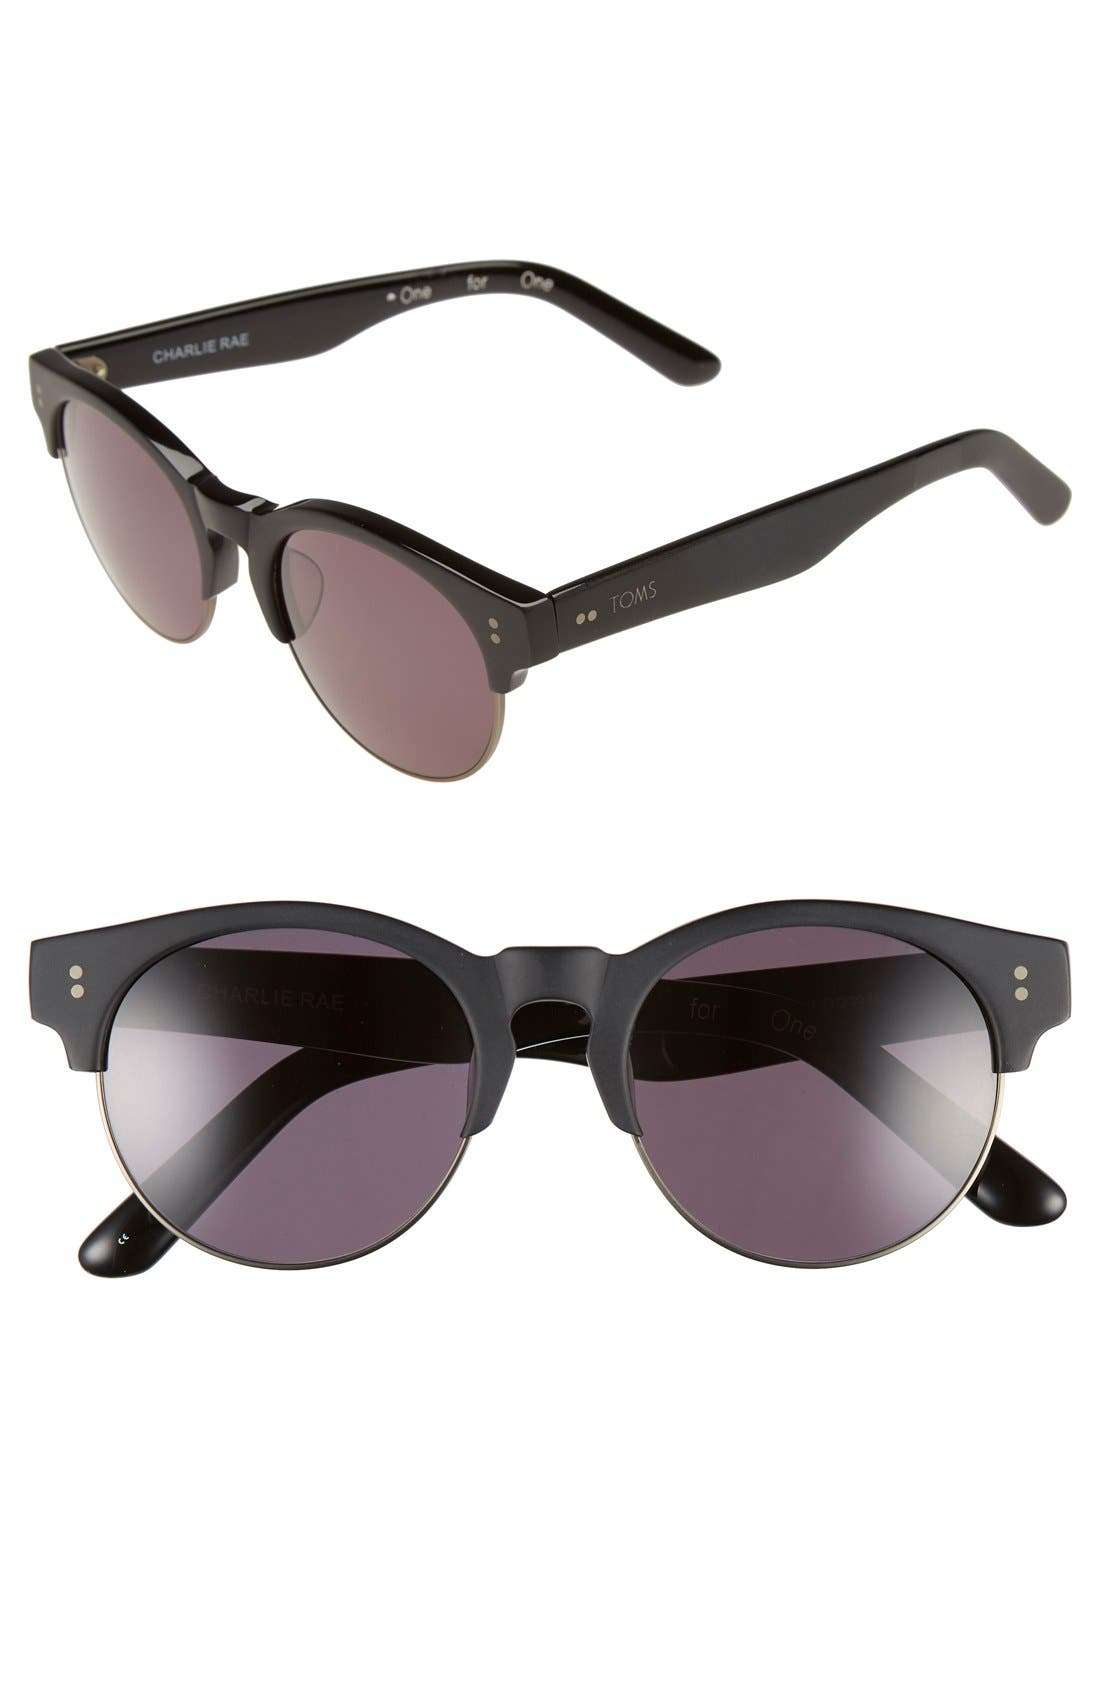 Main Image - TOMS 'Charlie Rae' 52mm Sunglasses